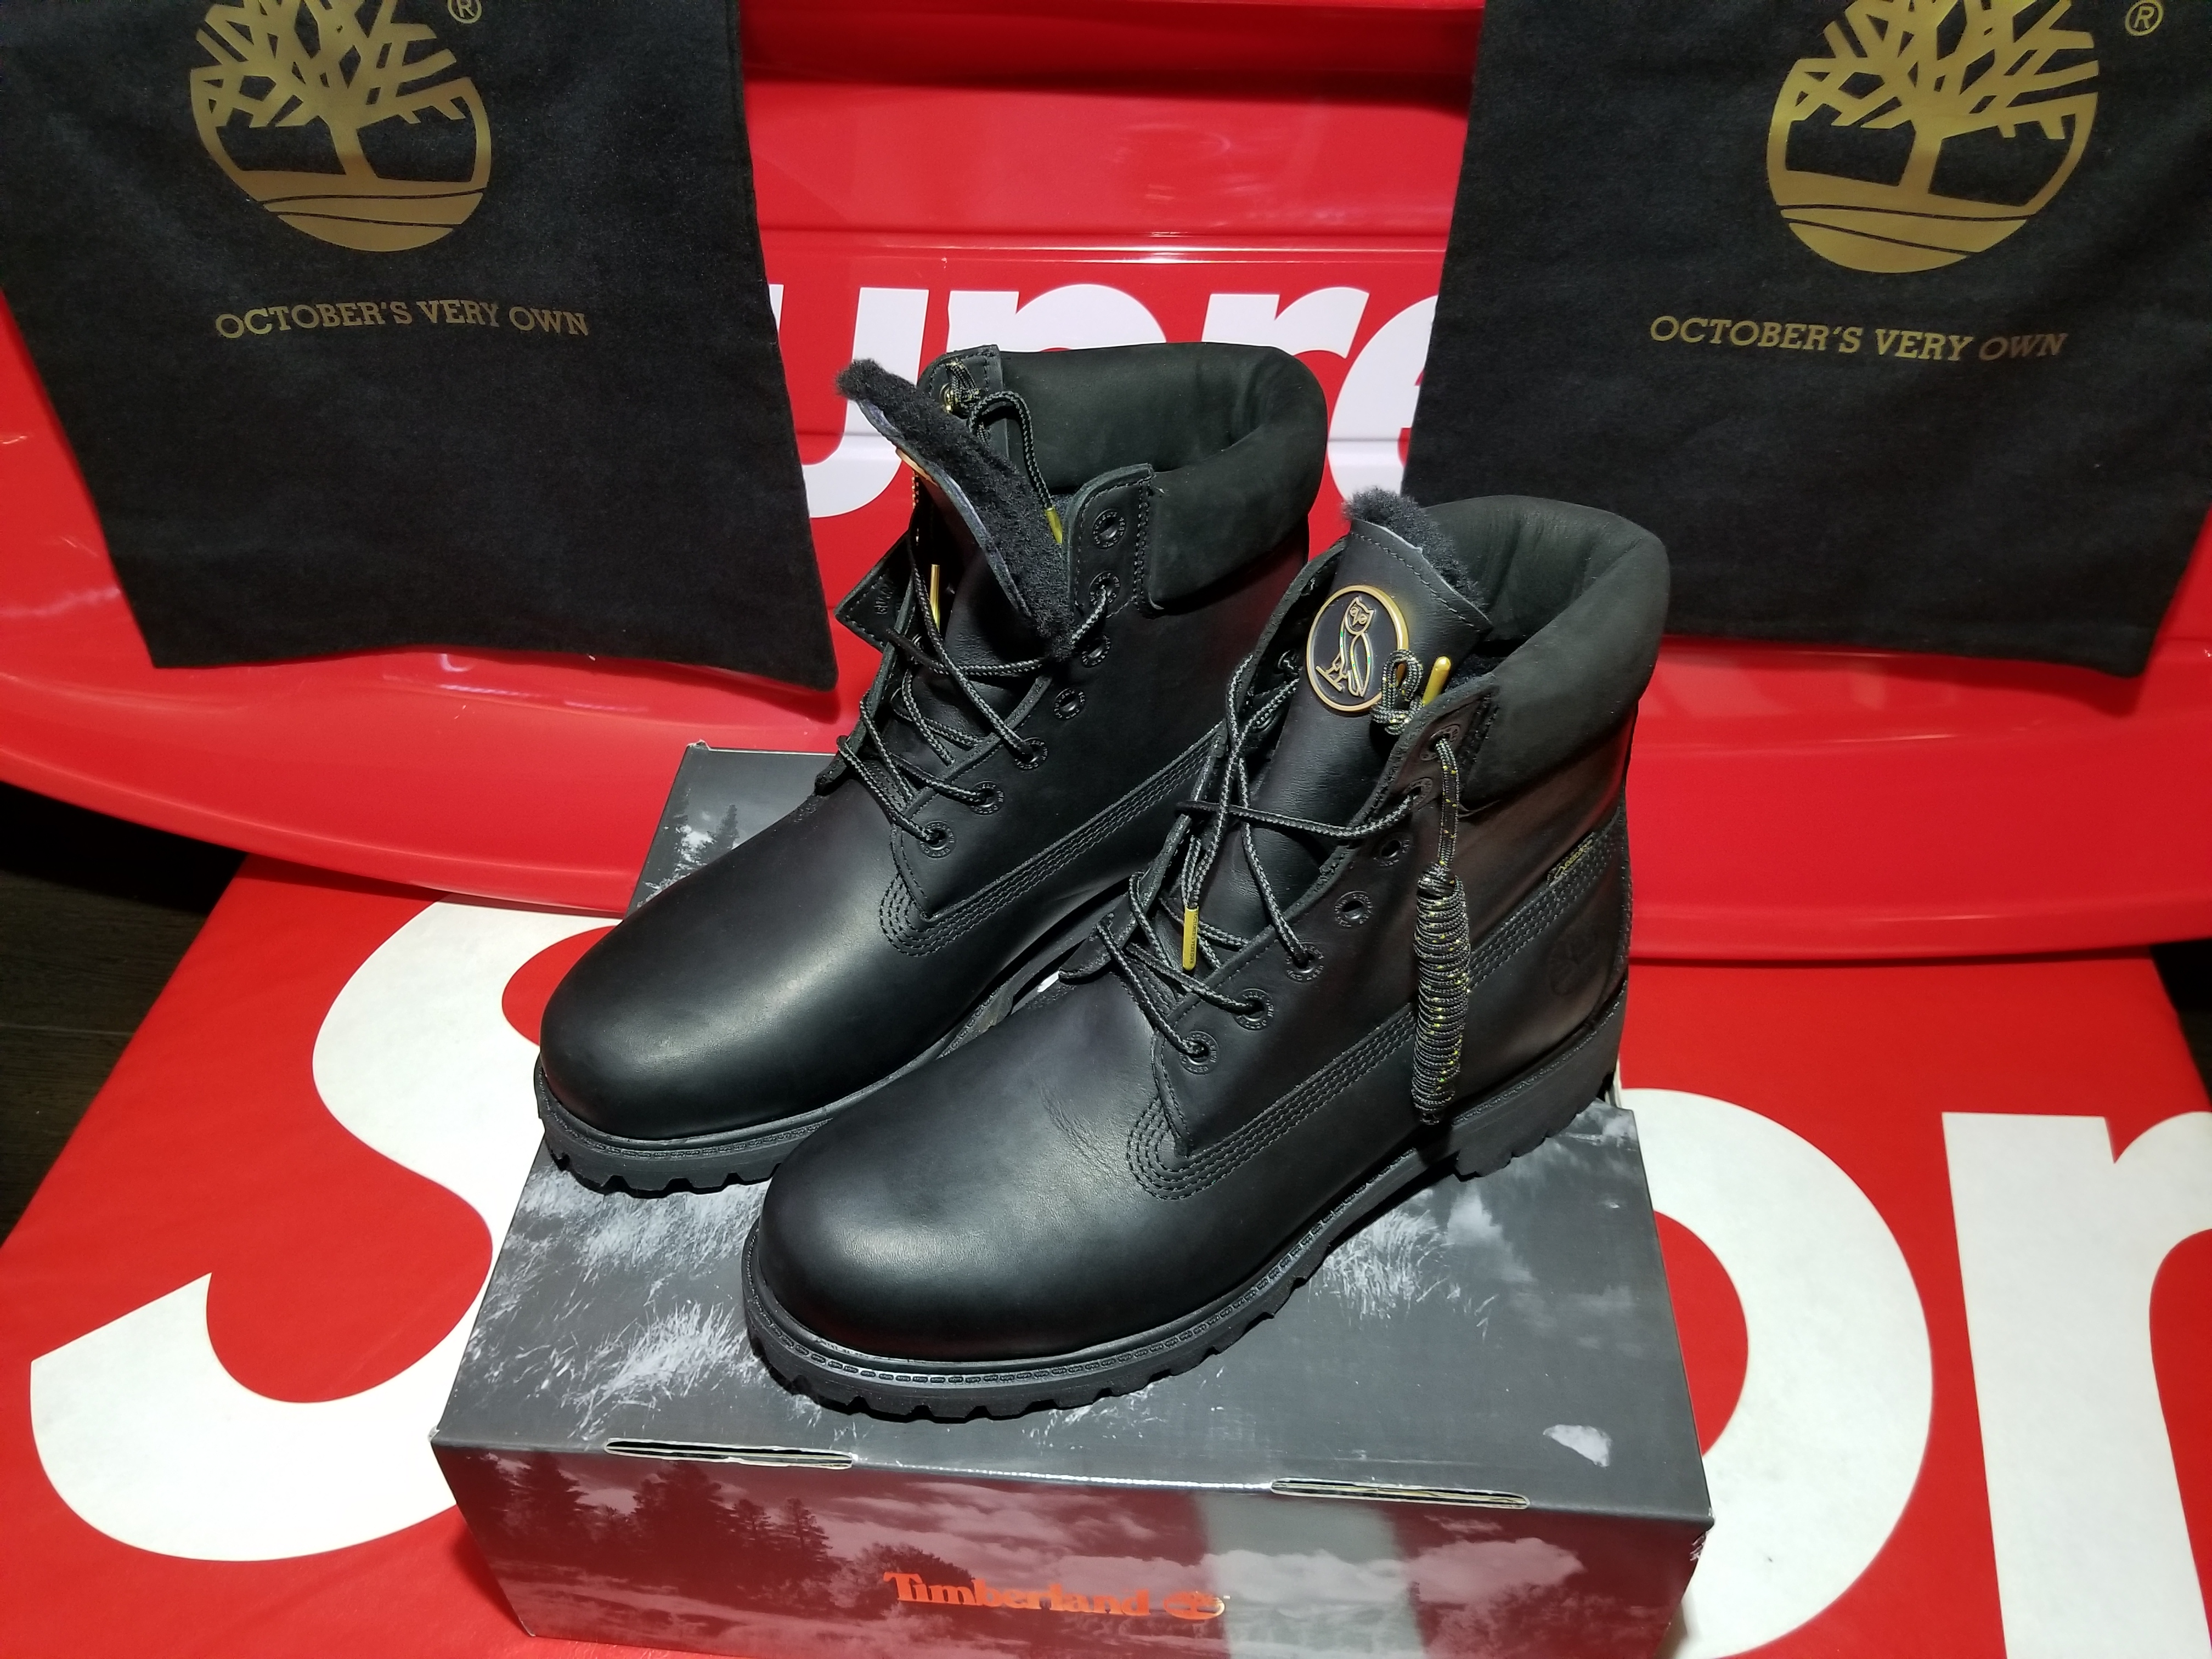 302ec748f623 Timberland Ovo x Timberland 6-Inch Boot Size 9.5 - Boots for Sale ...